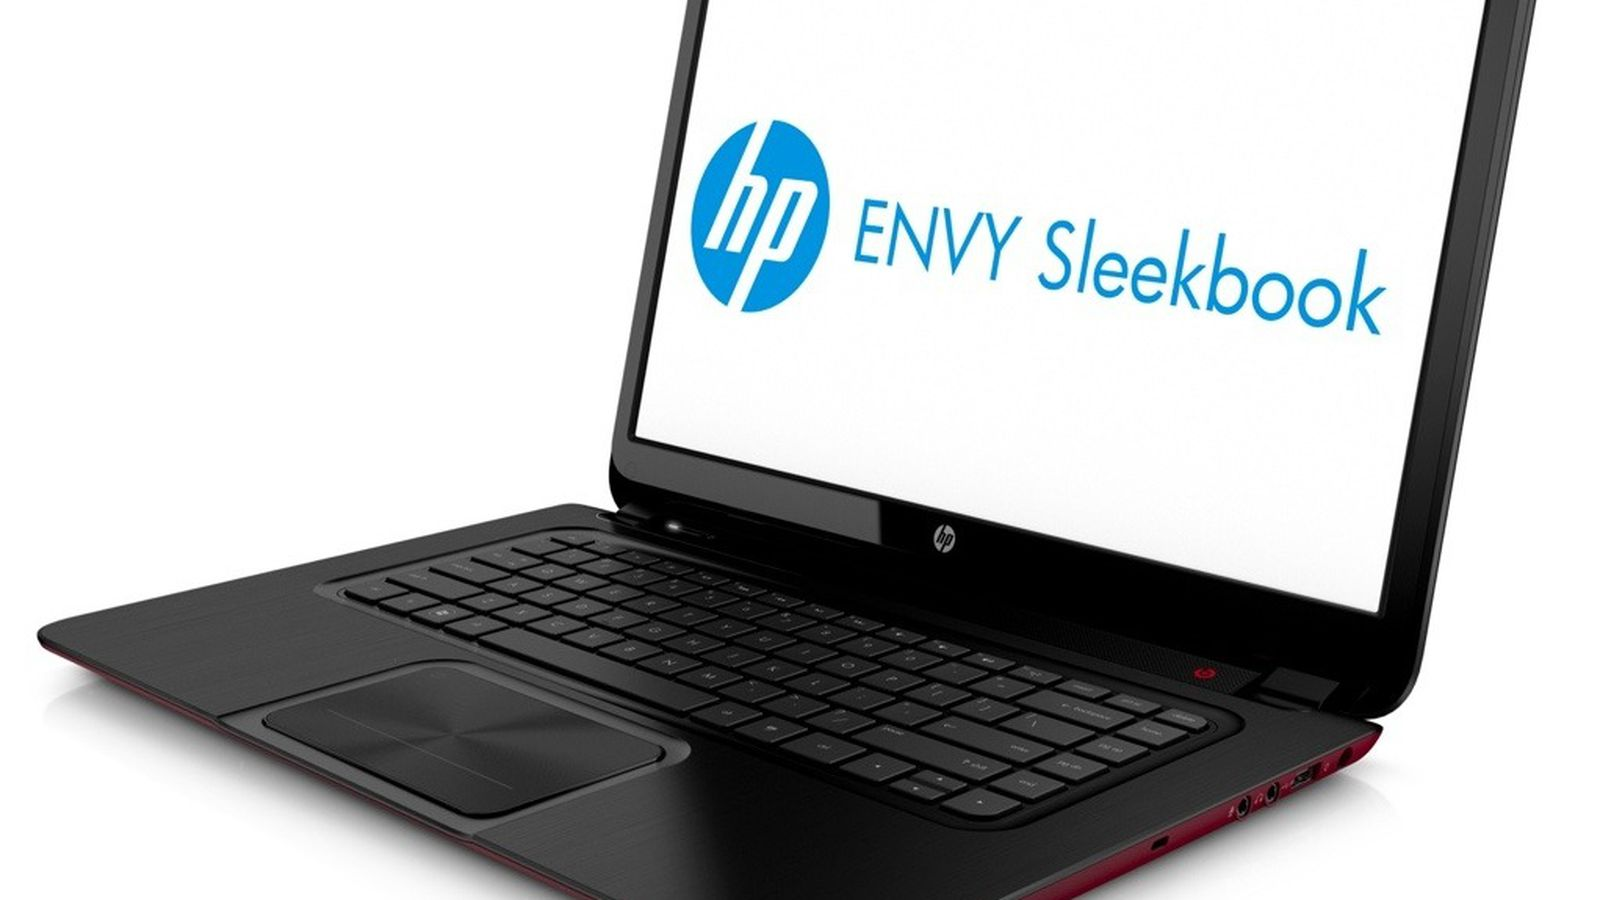 HP Envy Sleekbook and Envy Ultrabook stretch definitions ...